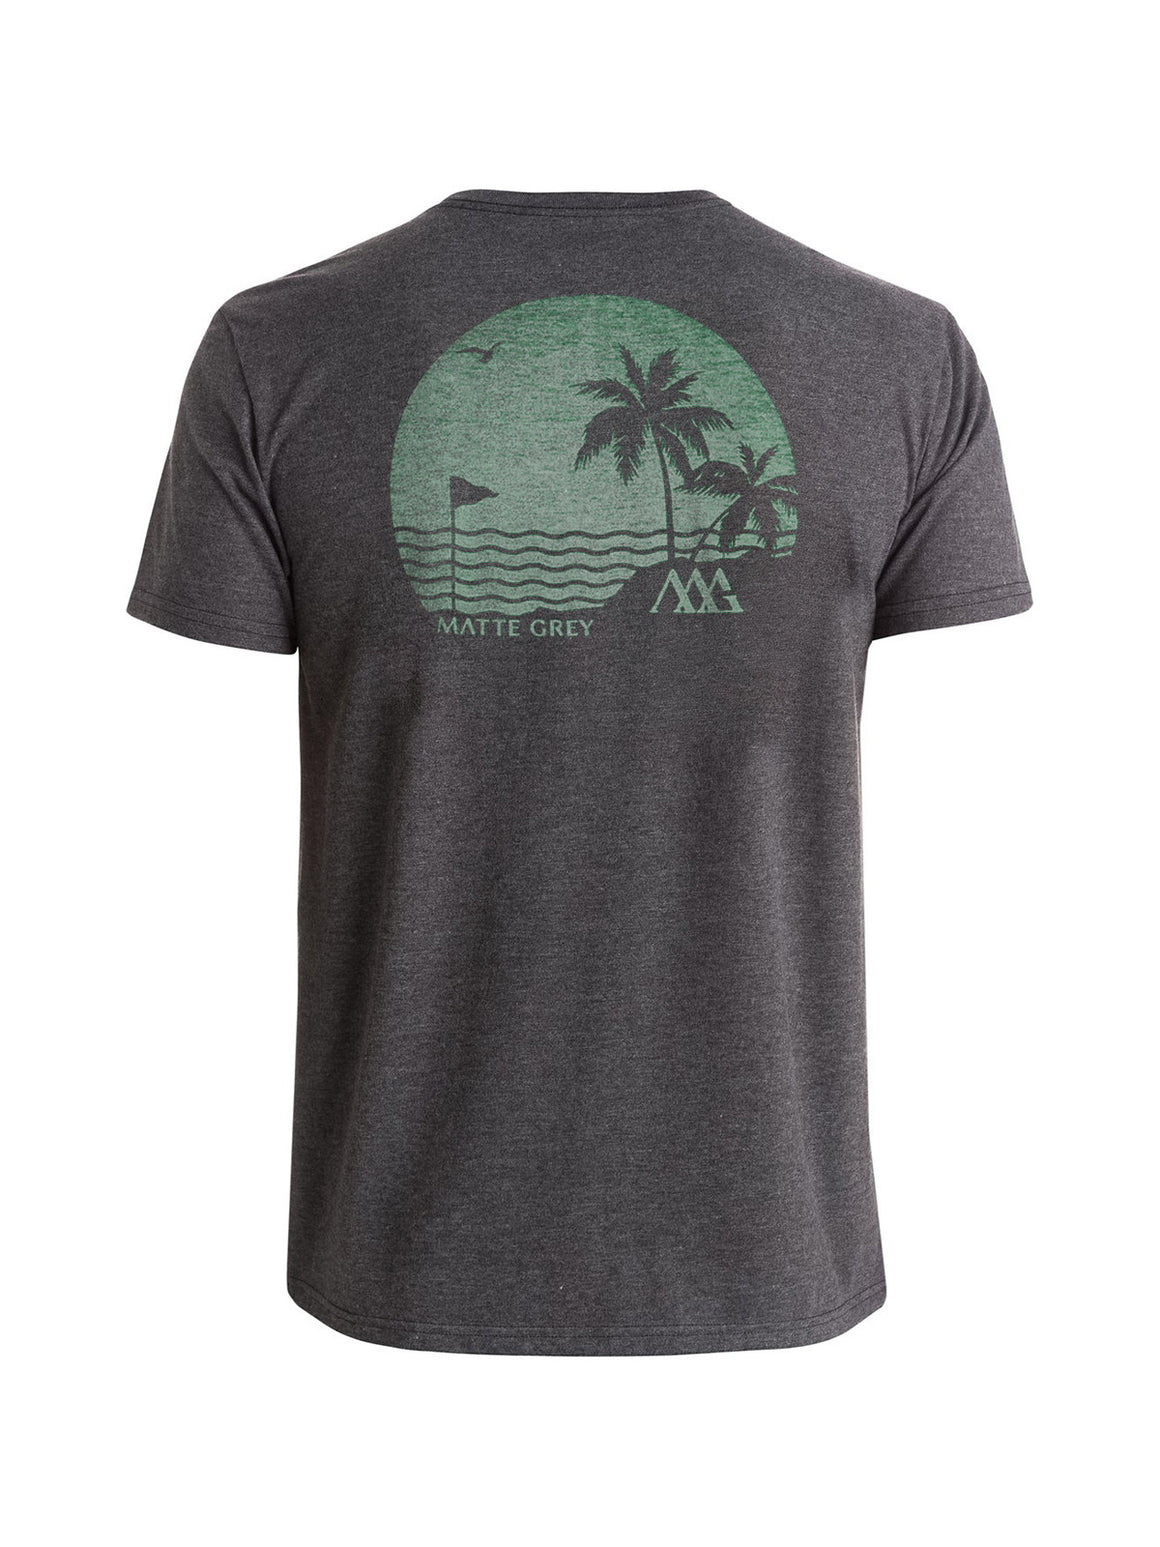 Island Back 9 Tee Shirt - Charcoal Heather (Tortoise)